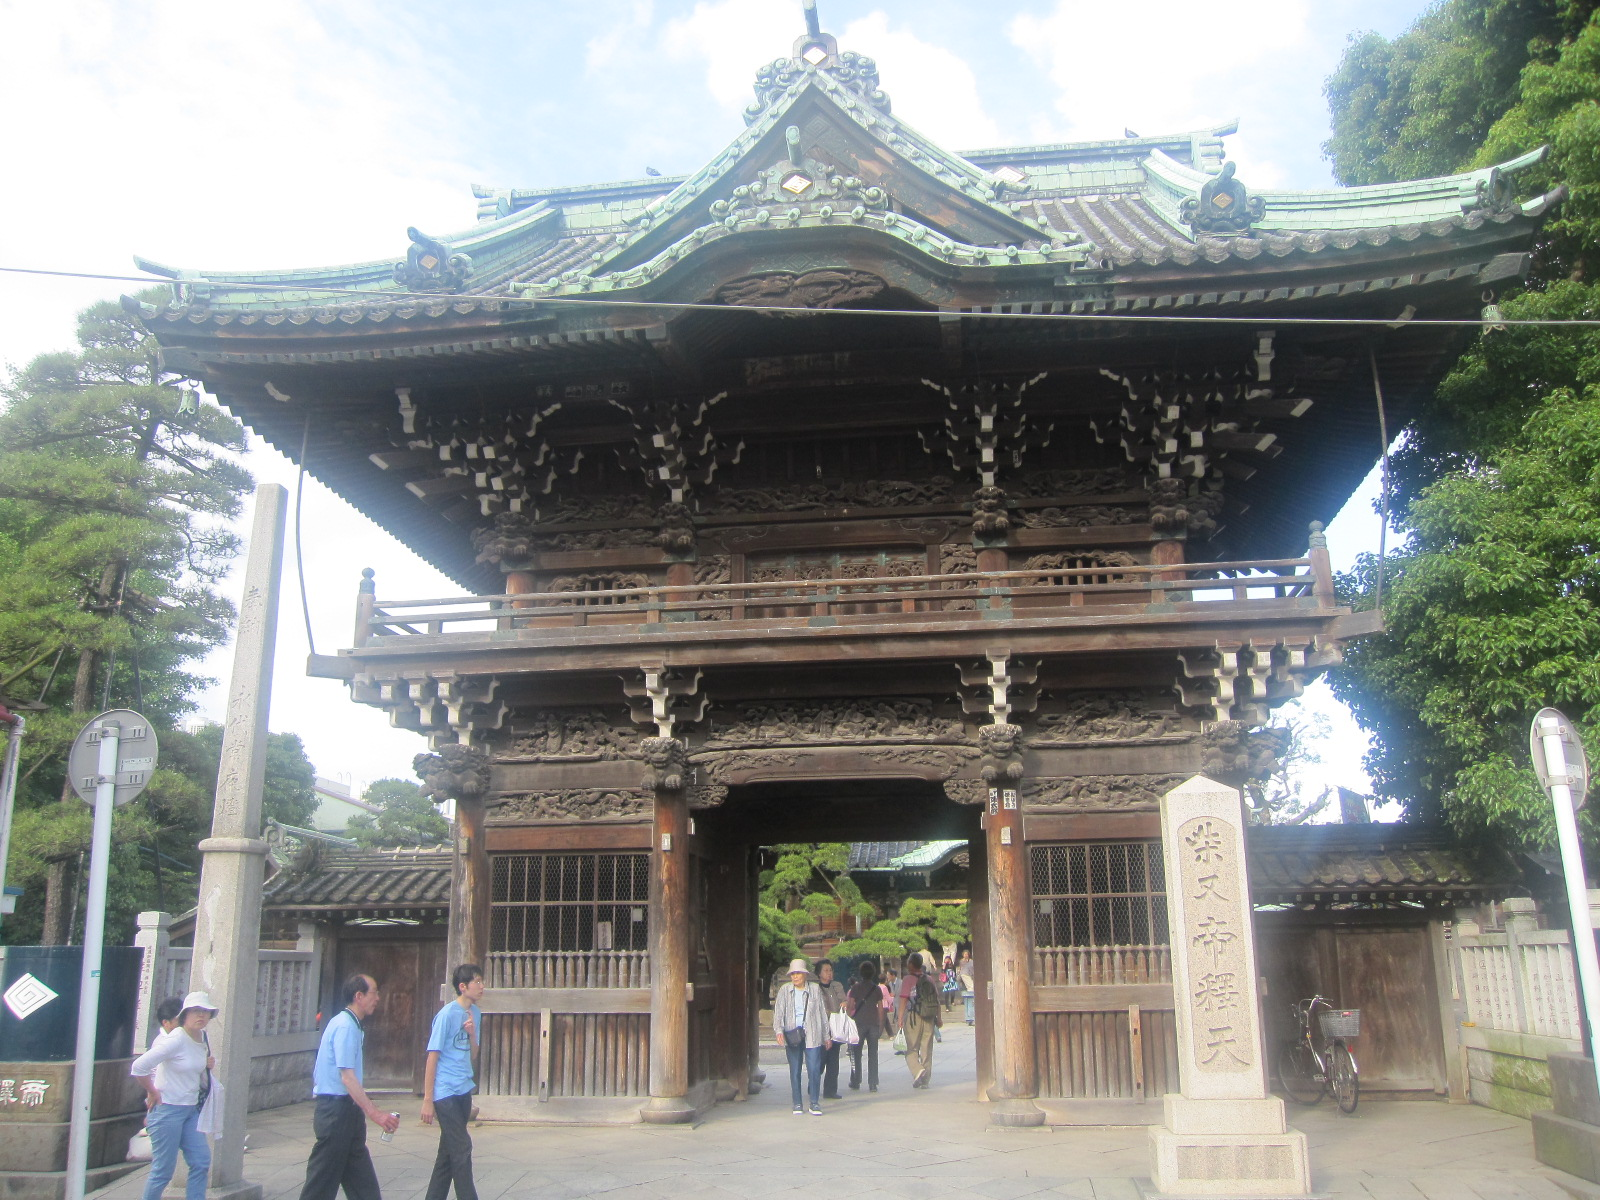 Shibamata